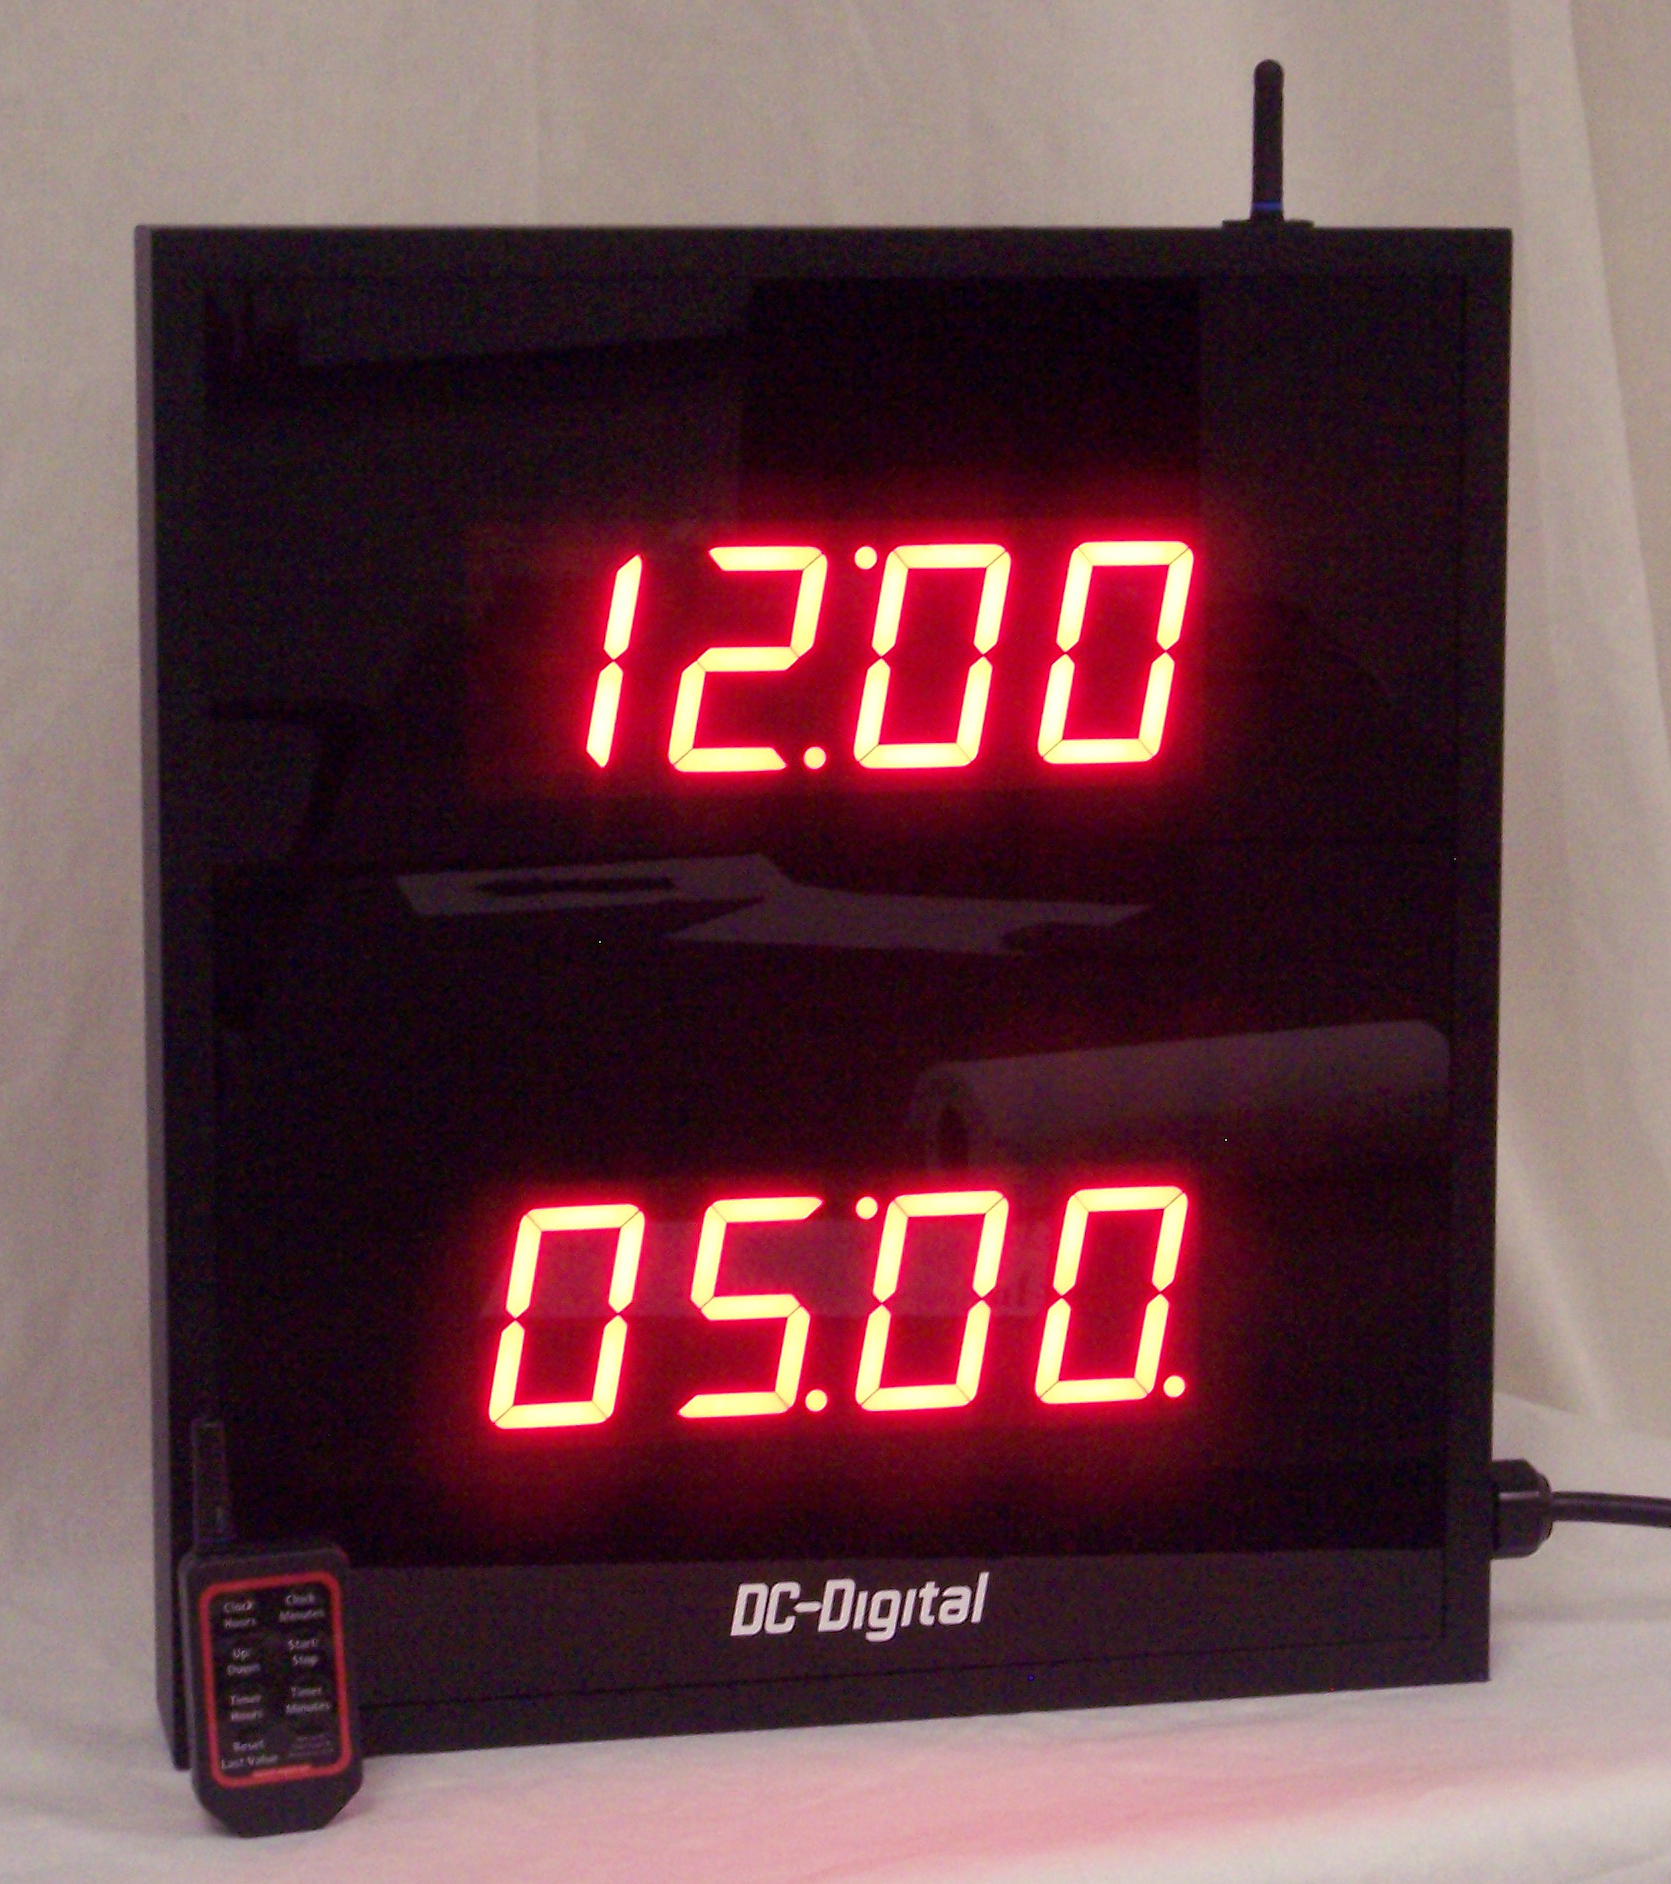 DC-2508 Digital Clock and count up and countdown timer